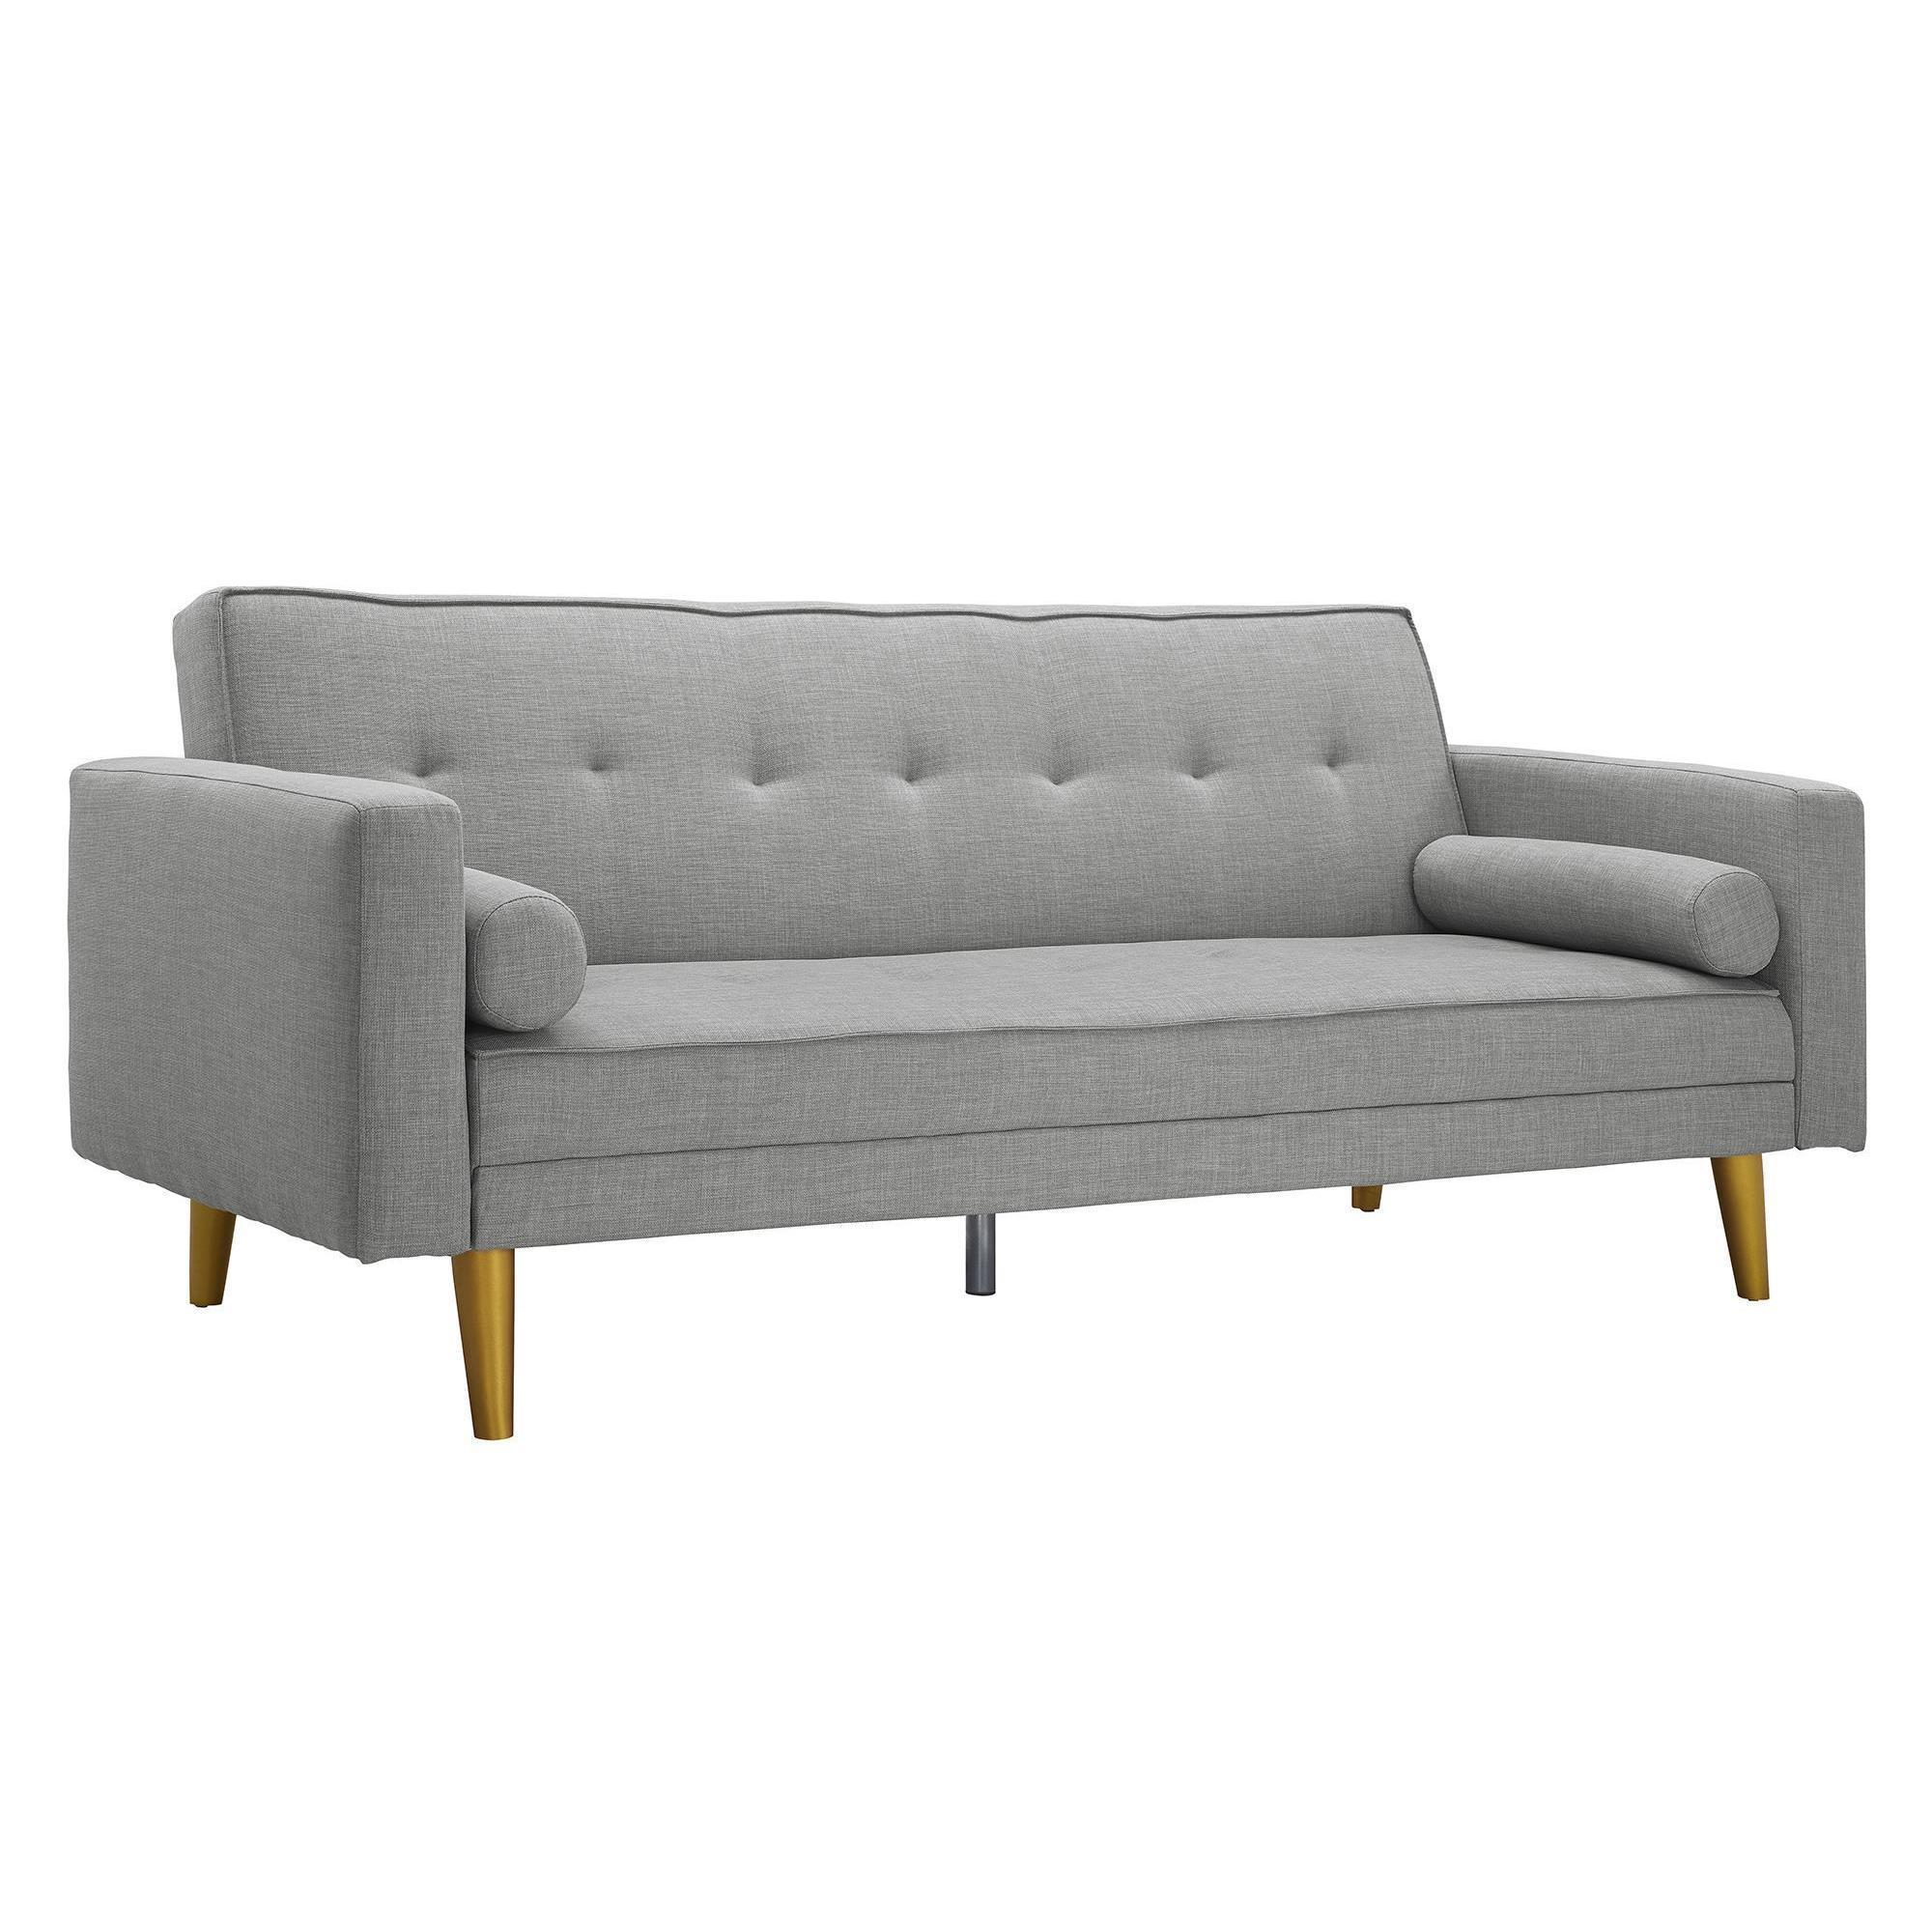 loveseat index futon page furniture gray light size category nantucket chain sleeper day product by java queen night id name